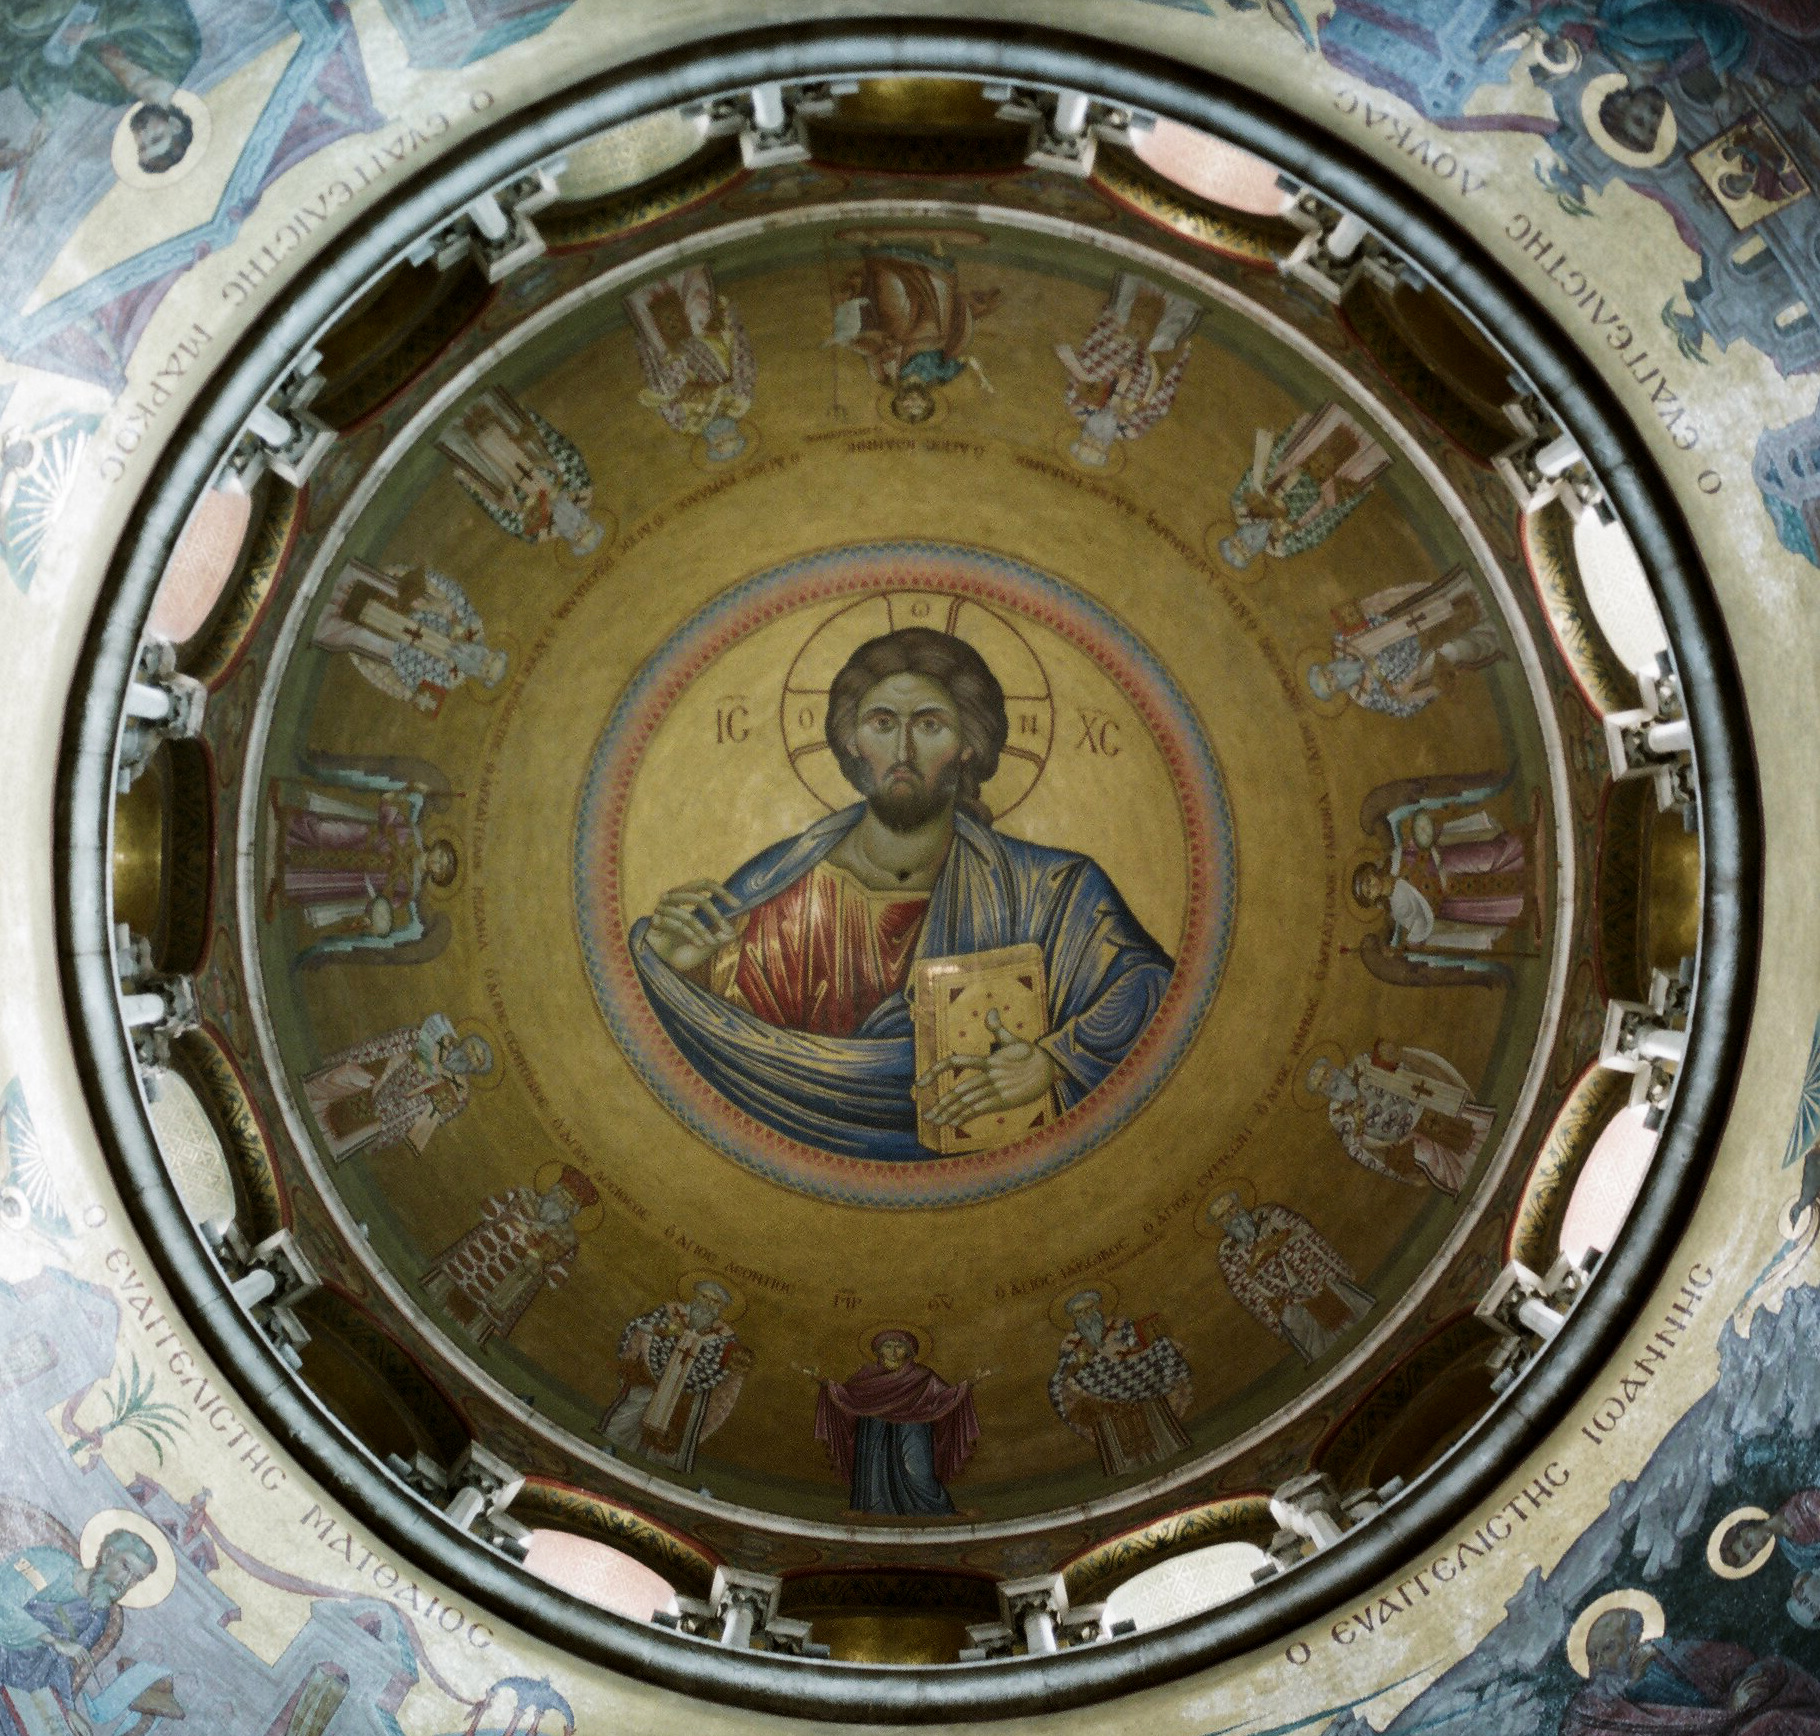 Christ Pantocrator mosaic in the smaller dome of the Church of the Holy Sepulchre, Jerusalem, Israel.